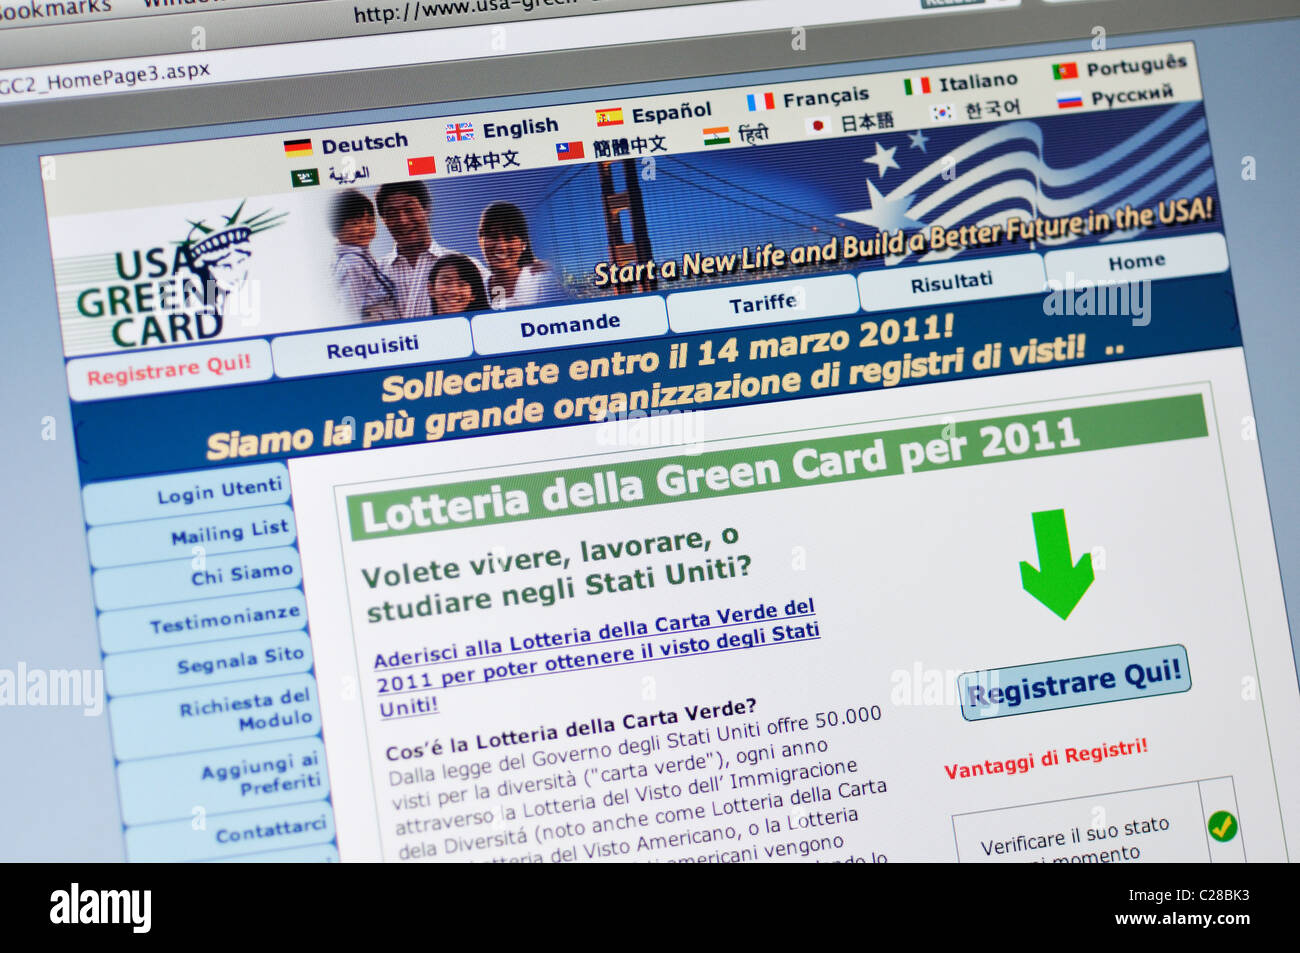 USA Green Card Lottery website - in Italian